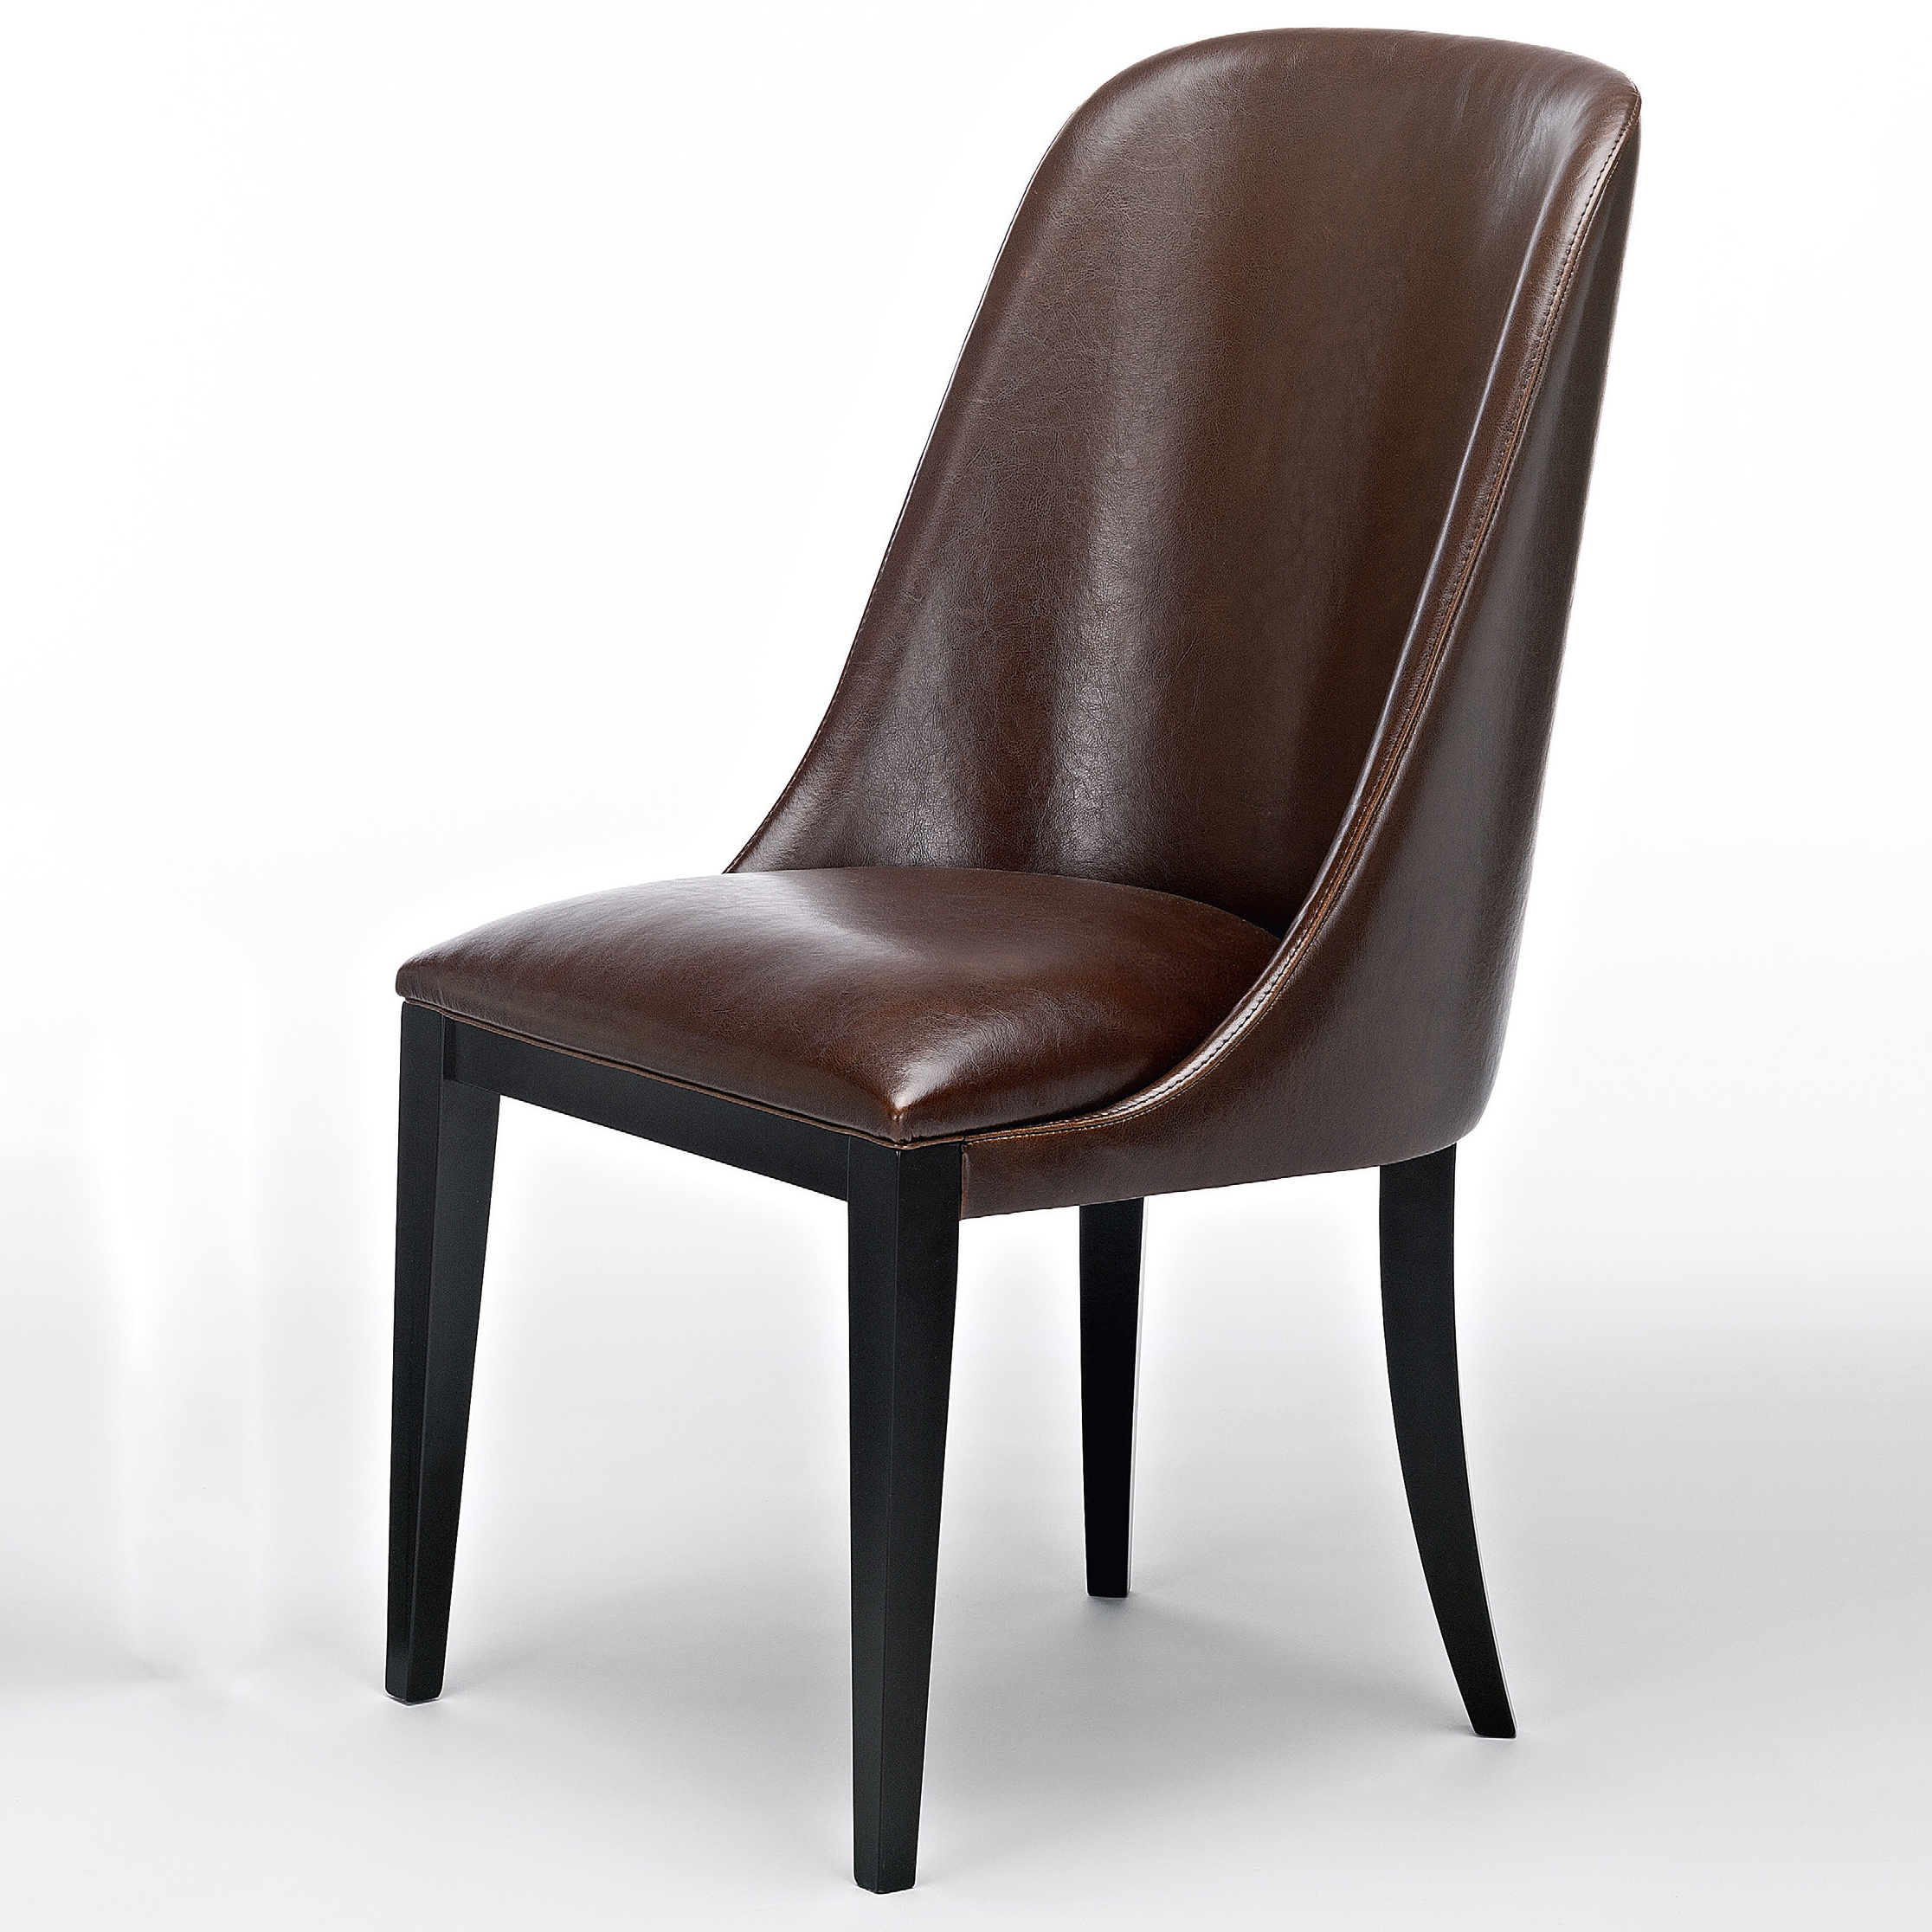 Flamingo dark brown leather dining chairs